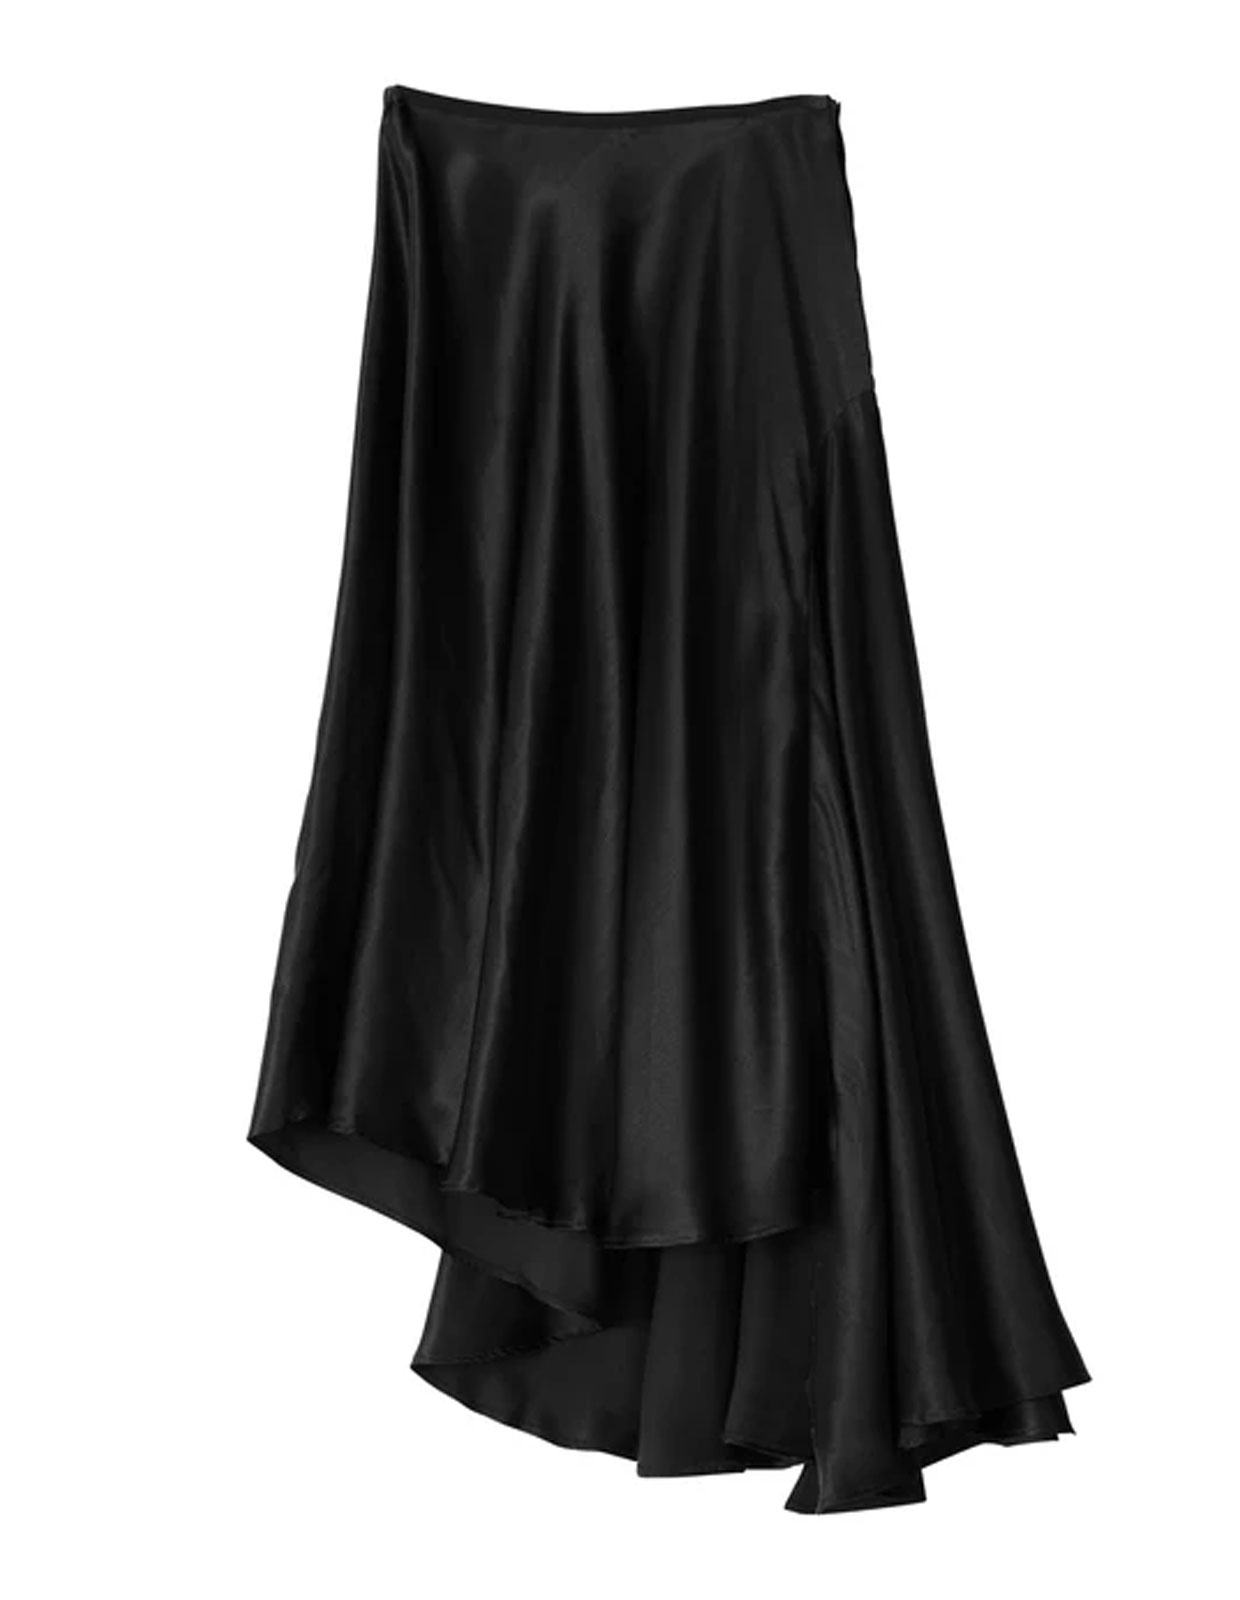 Kara Skirt Asymmetric Black